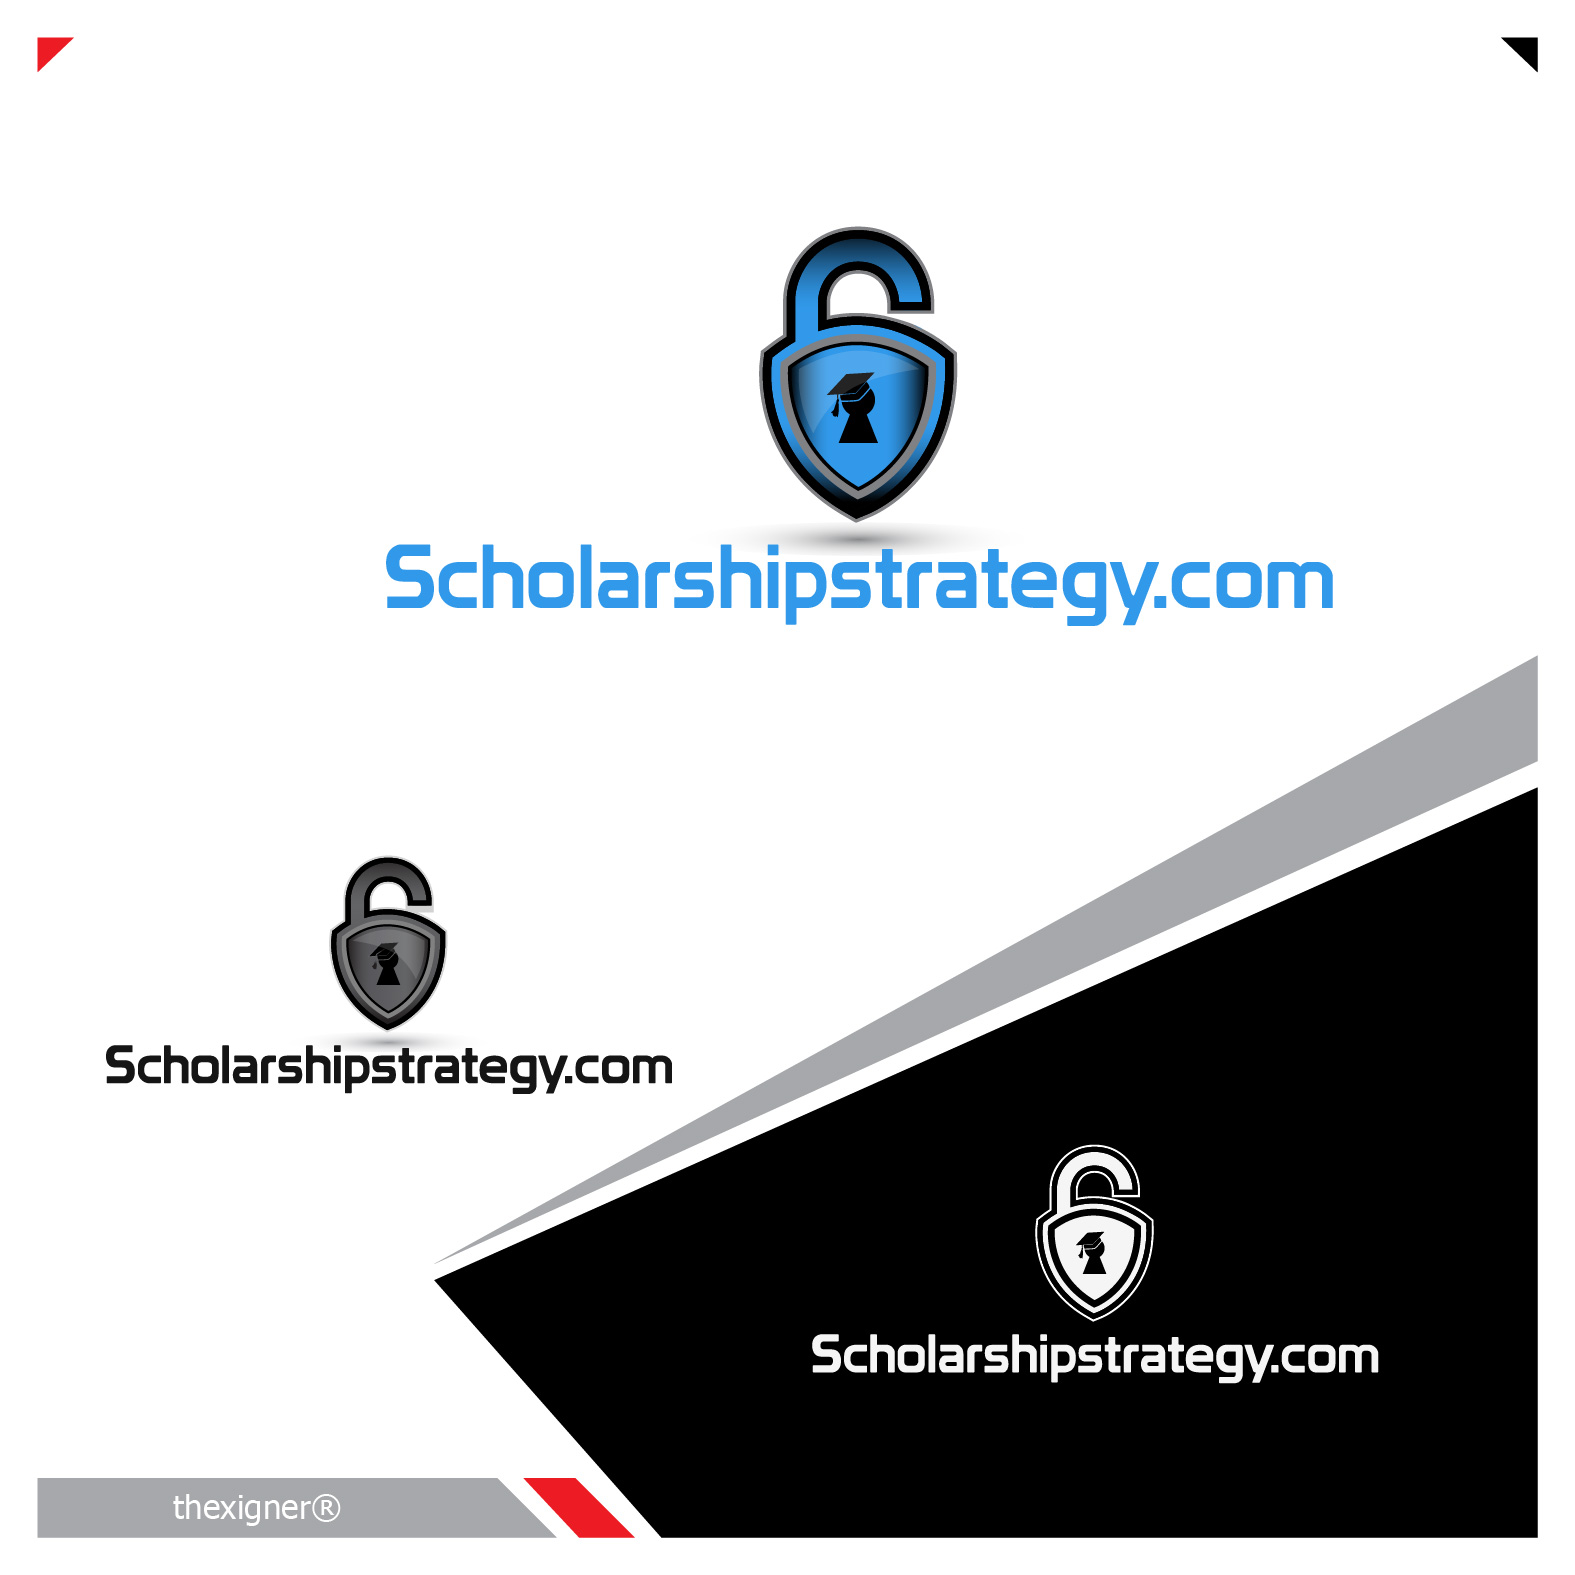 Logo Design by lagalag - Entry No. 101 in the Logo Design Contest Captivating Logo Design for Scholarshipstrategy.com.